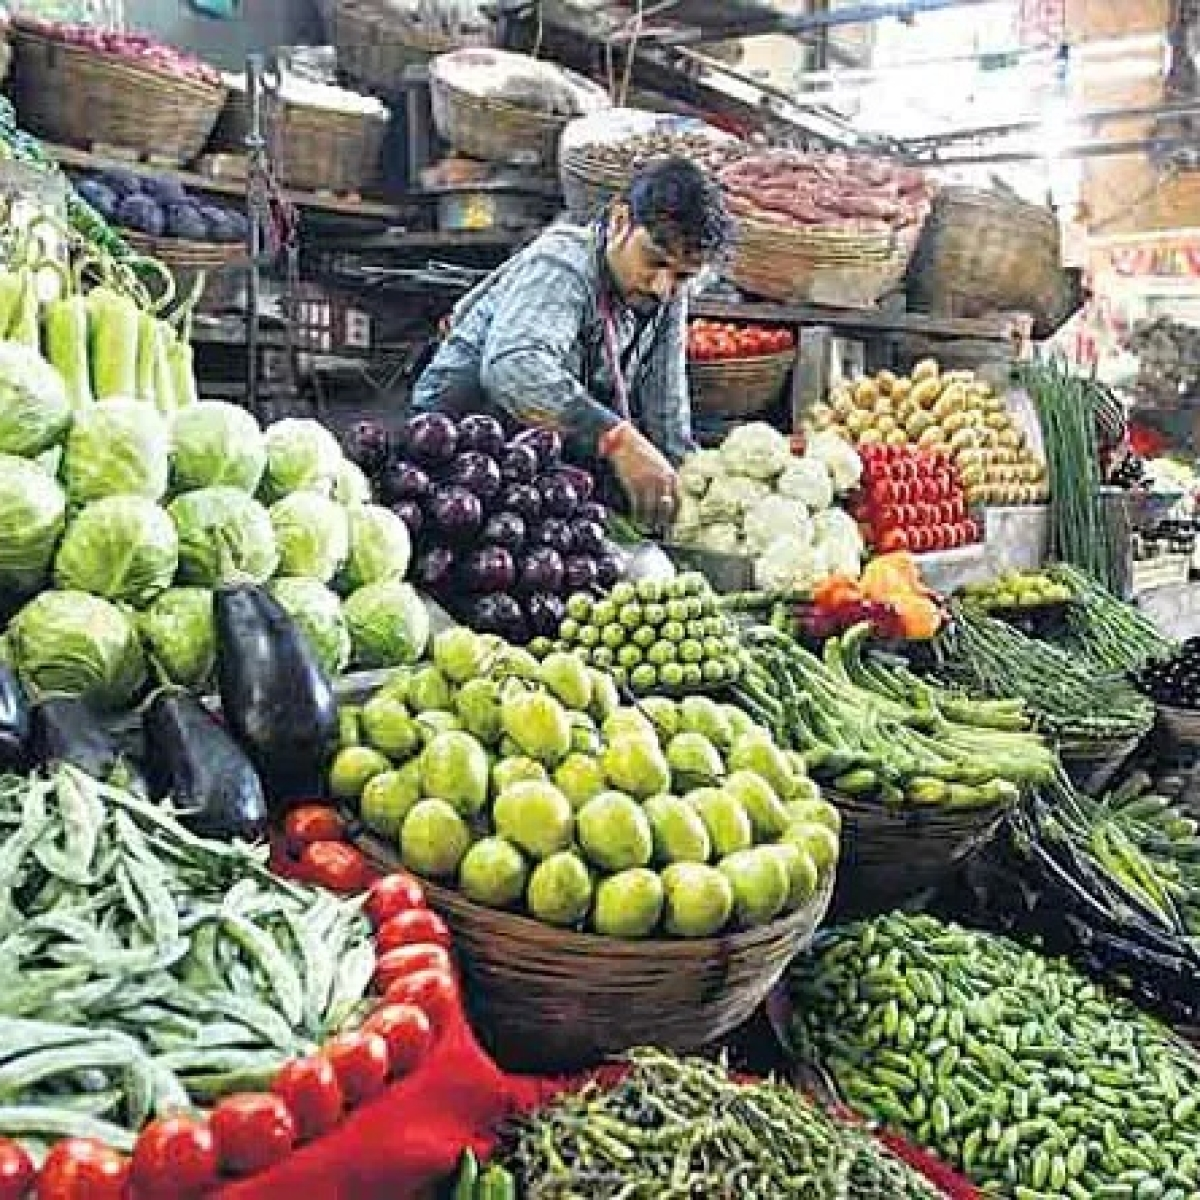 RBI sees retail inflation falling below 4% as Covid-19 threatens demand